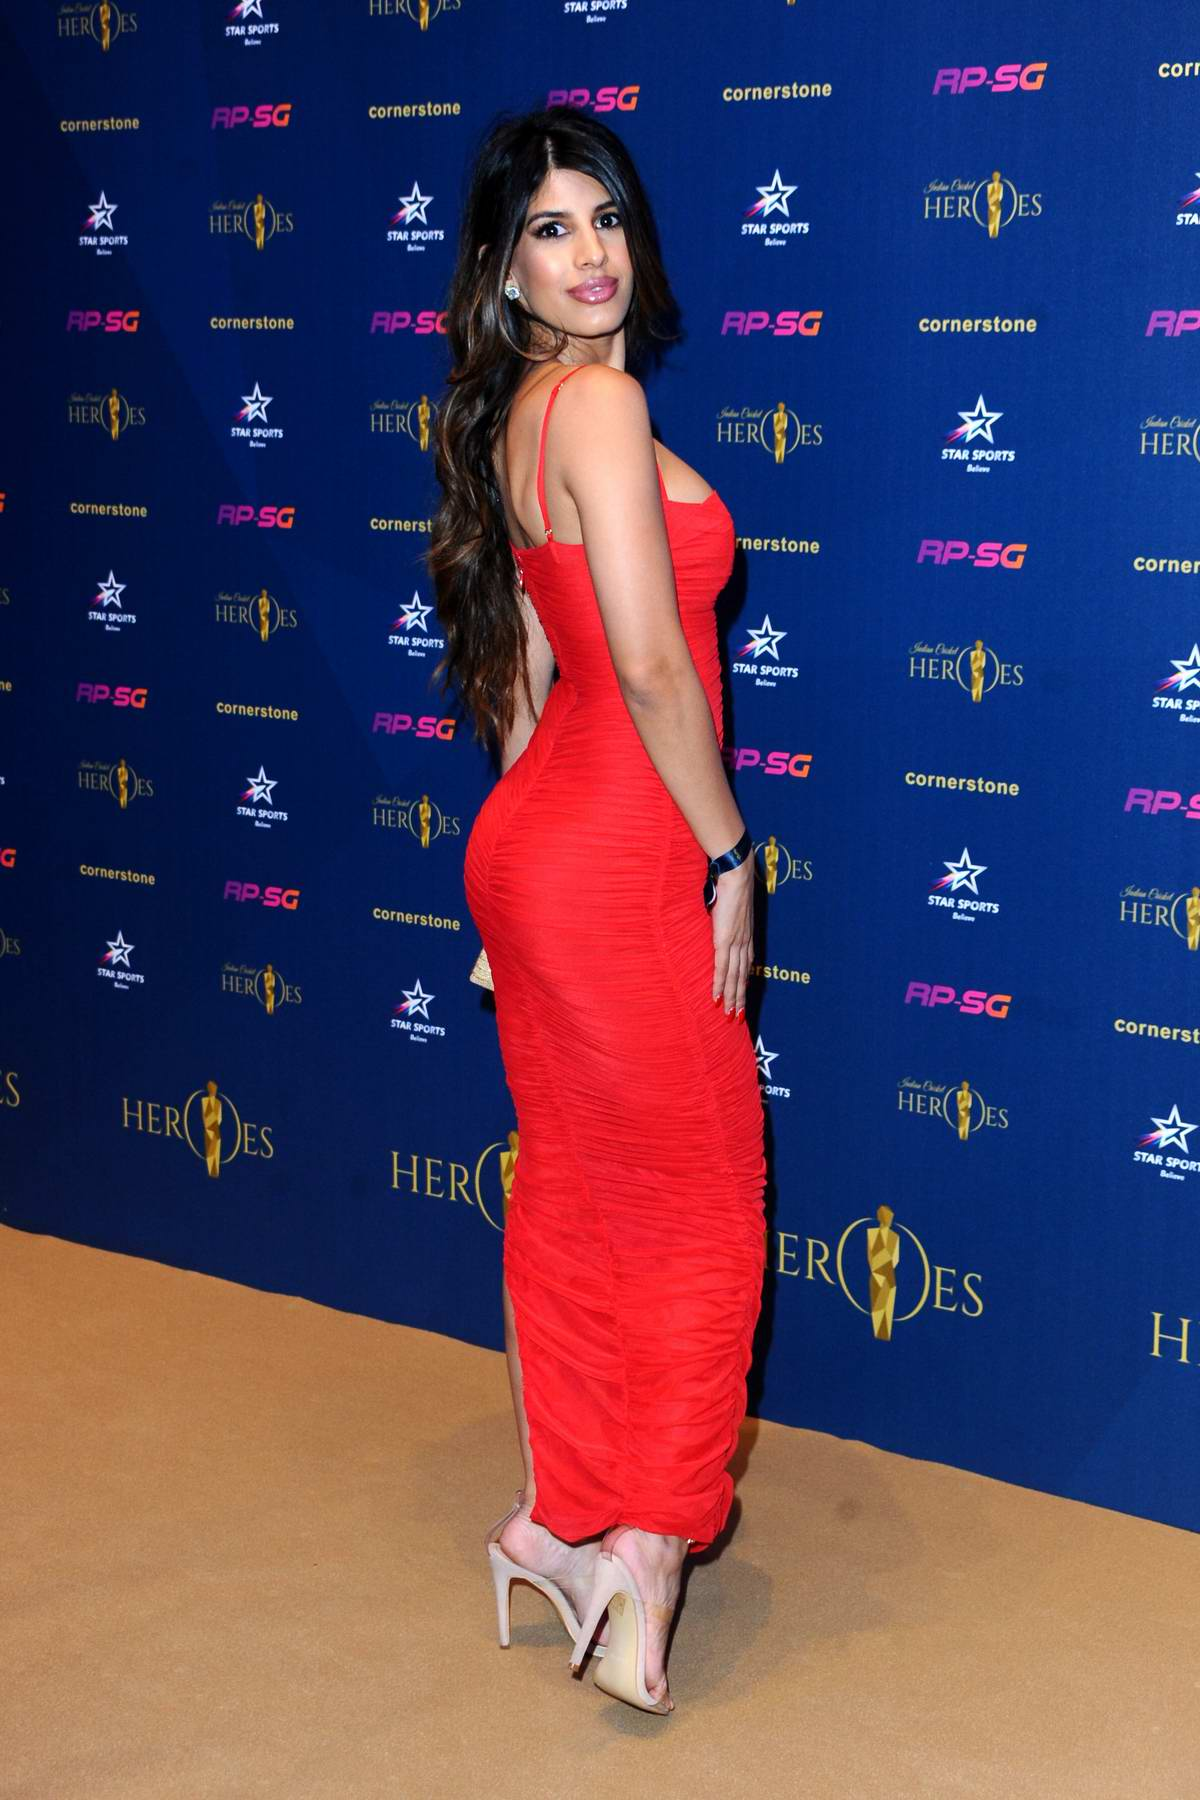 Jasmin Walia attends the Indian Cricket Heroes Awards Night at Lords Cricket Ground in London, UK